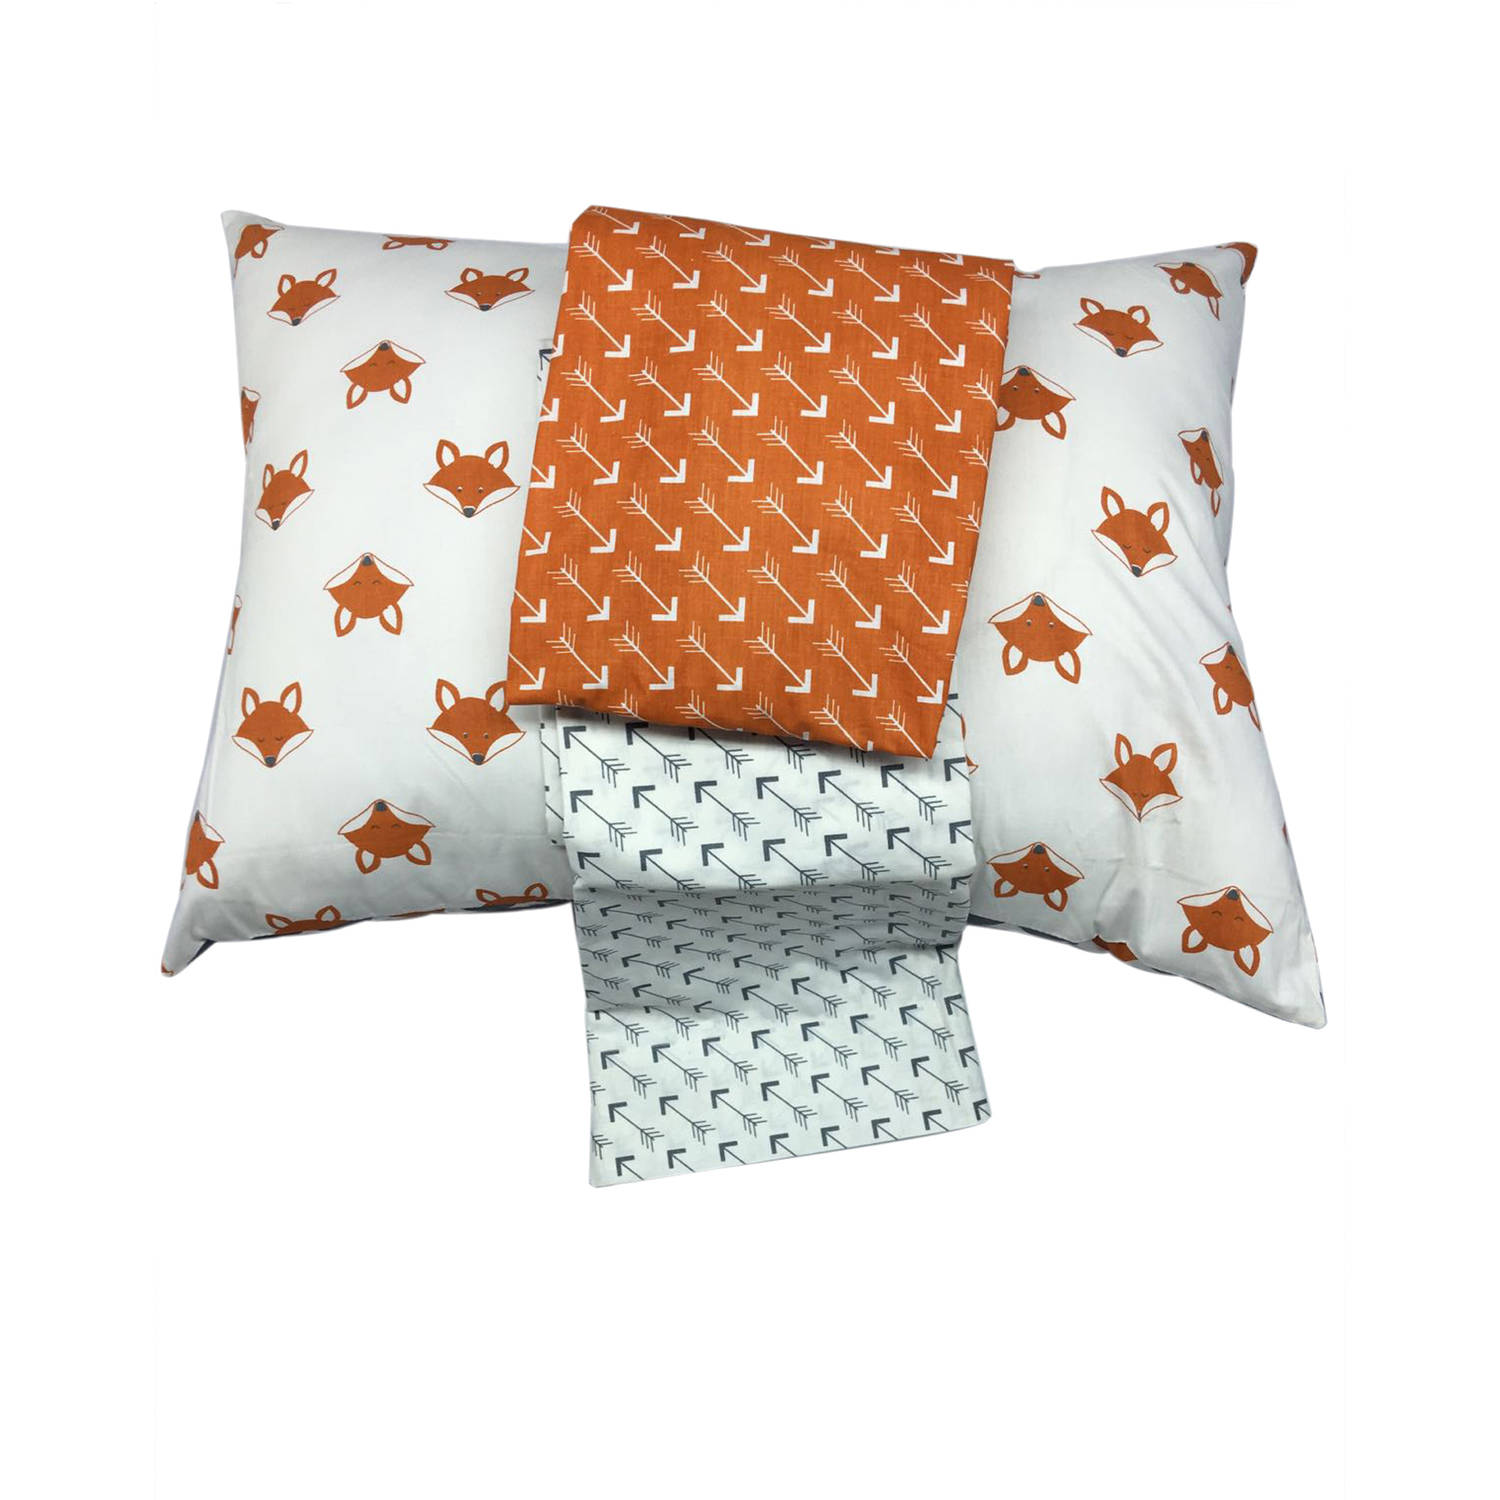 Bacati Playful Foxs 3-Piece 100% Cotton Percale Toddler SHeet Set, Orange Gray by Bacati